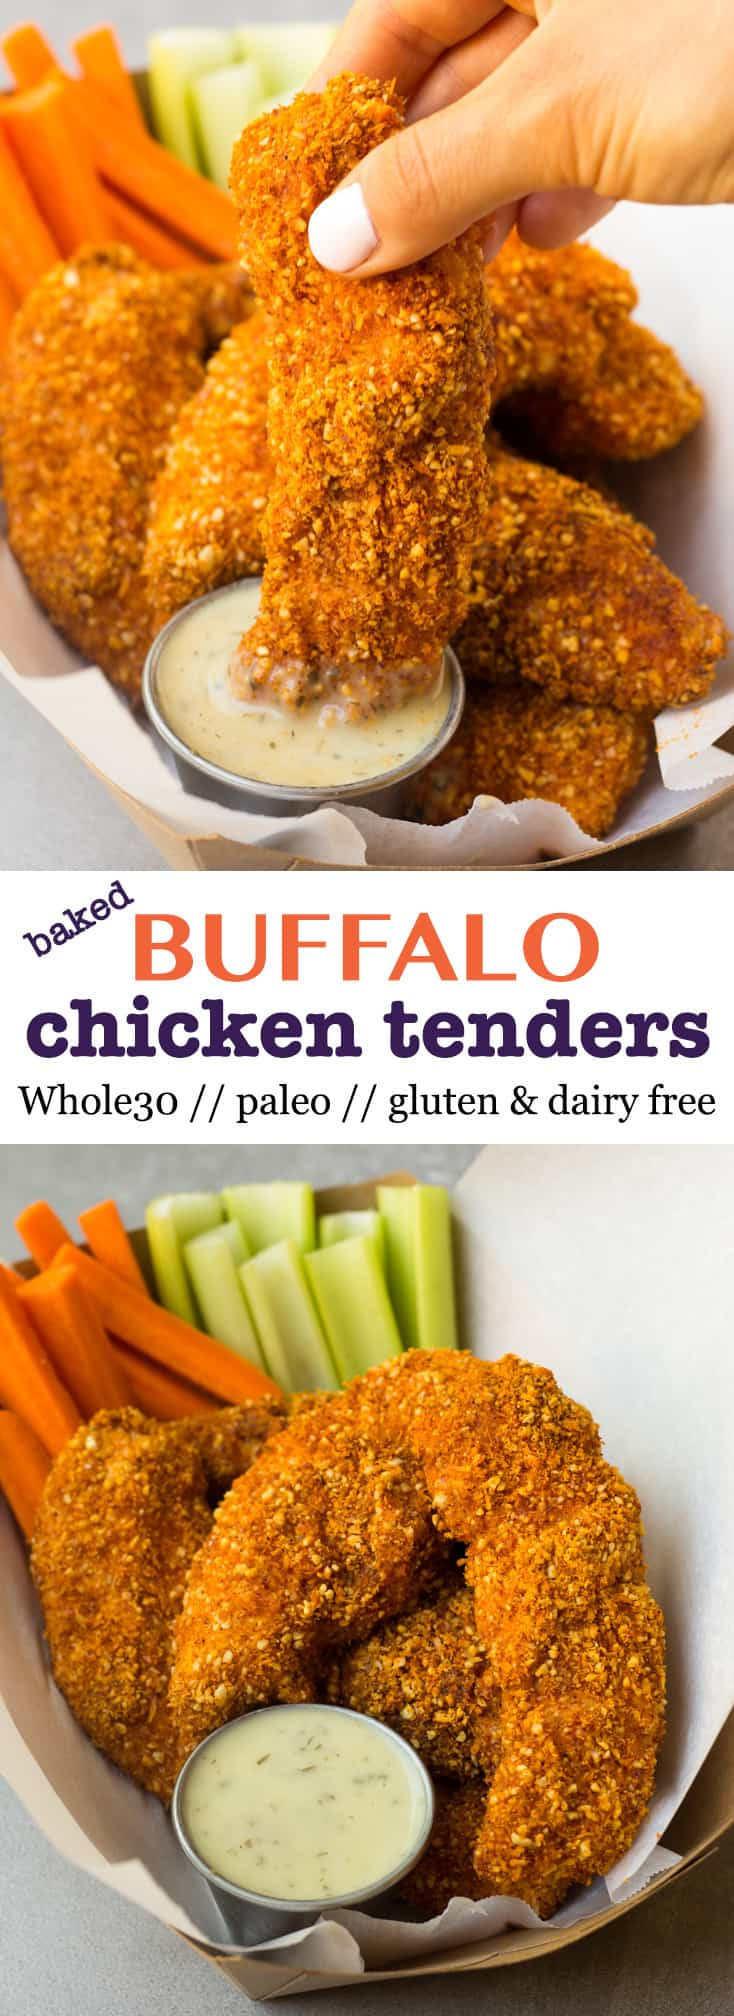 A healthy and gluten free spin on Buffalo Chicken Tenders! They take 30 minutes and are paleo & Whole30 approved - perfect for lunch, dinner, or tailgating! - Eat the Gains